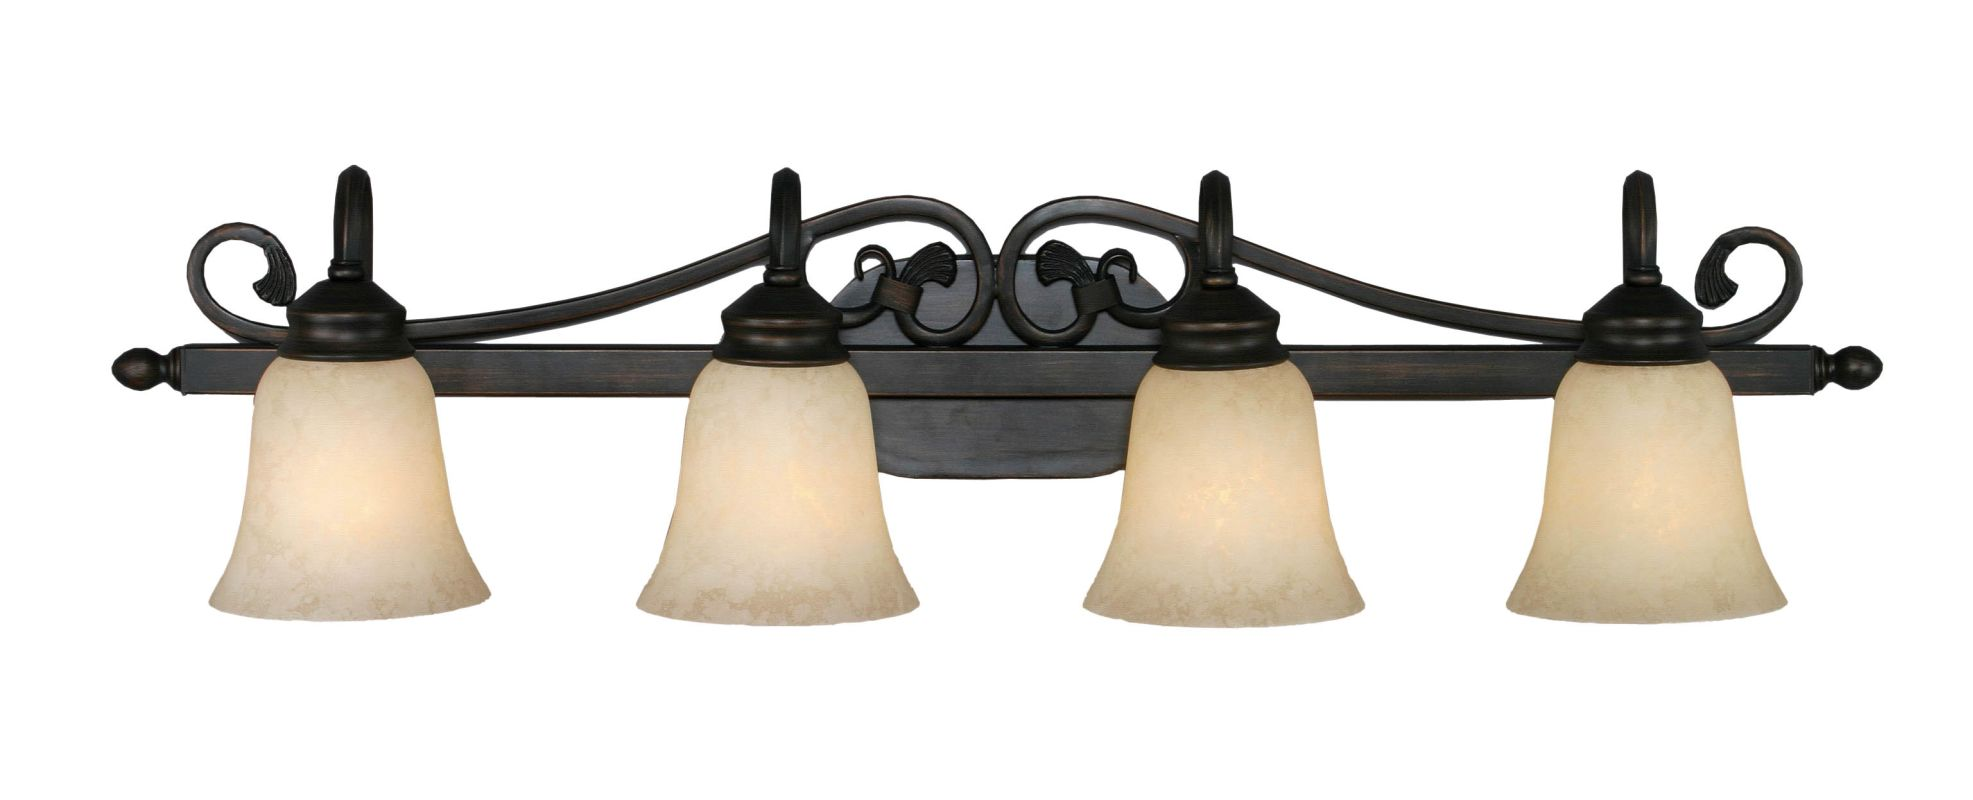 Golden Lighting 4074-4 Belle Meade 4 Light Bathroom Vanity Light